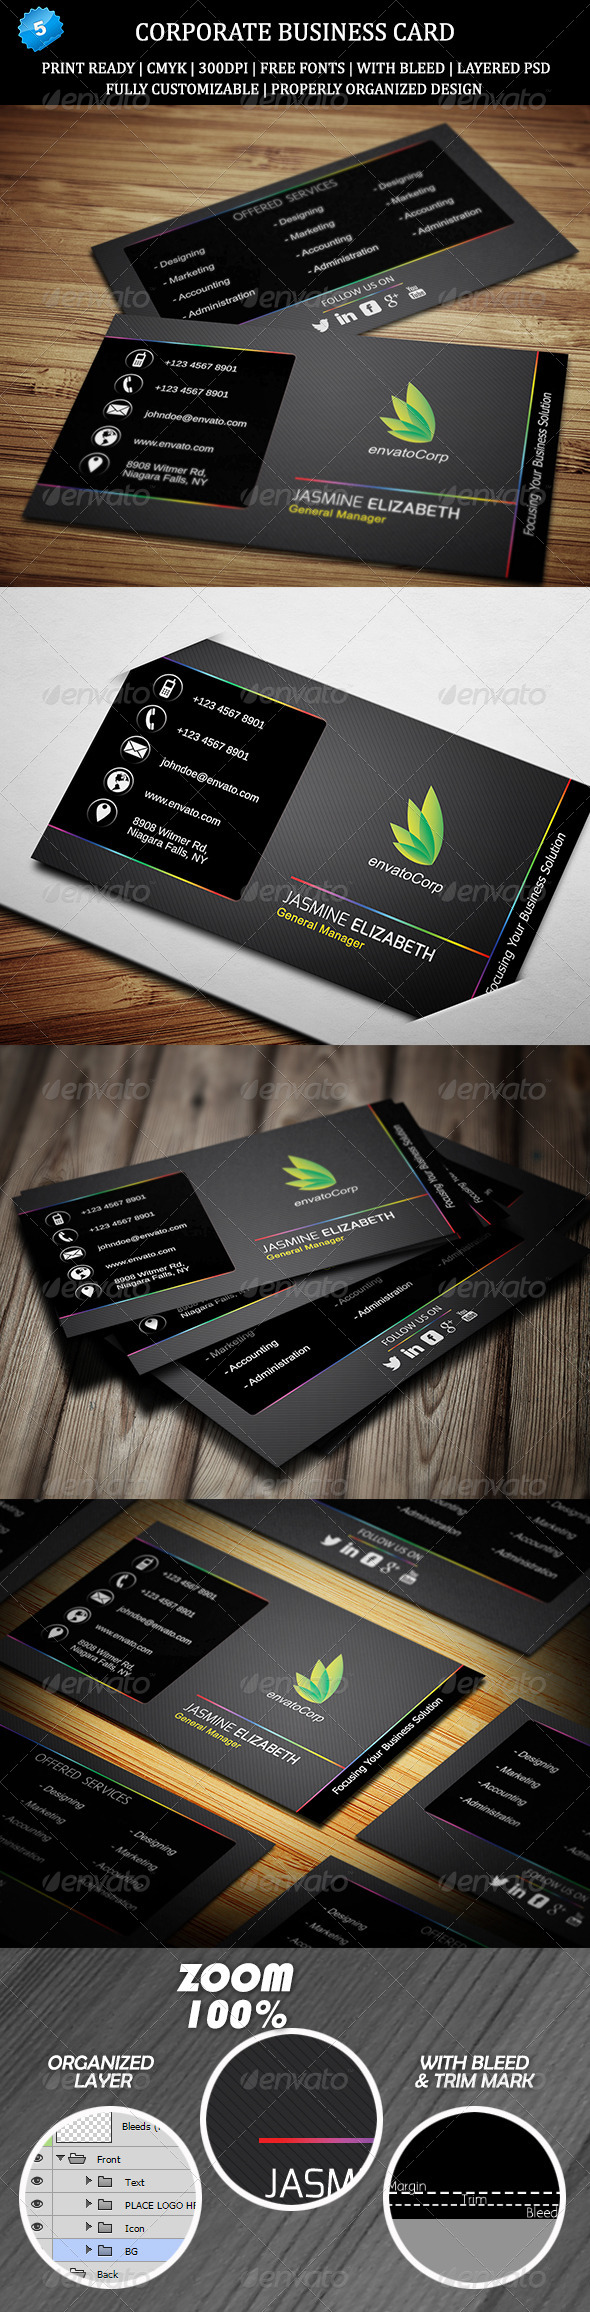 GraphicRiver Corporate Business Card 5 6478334